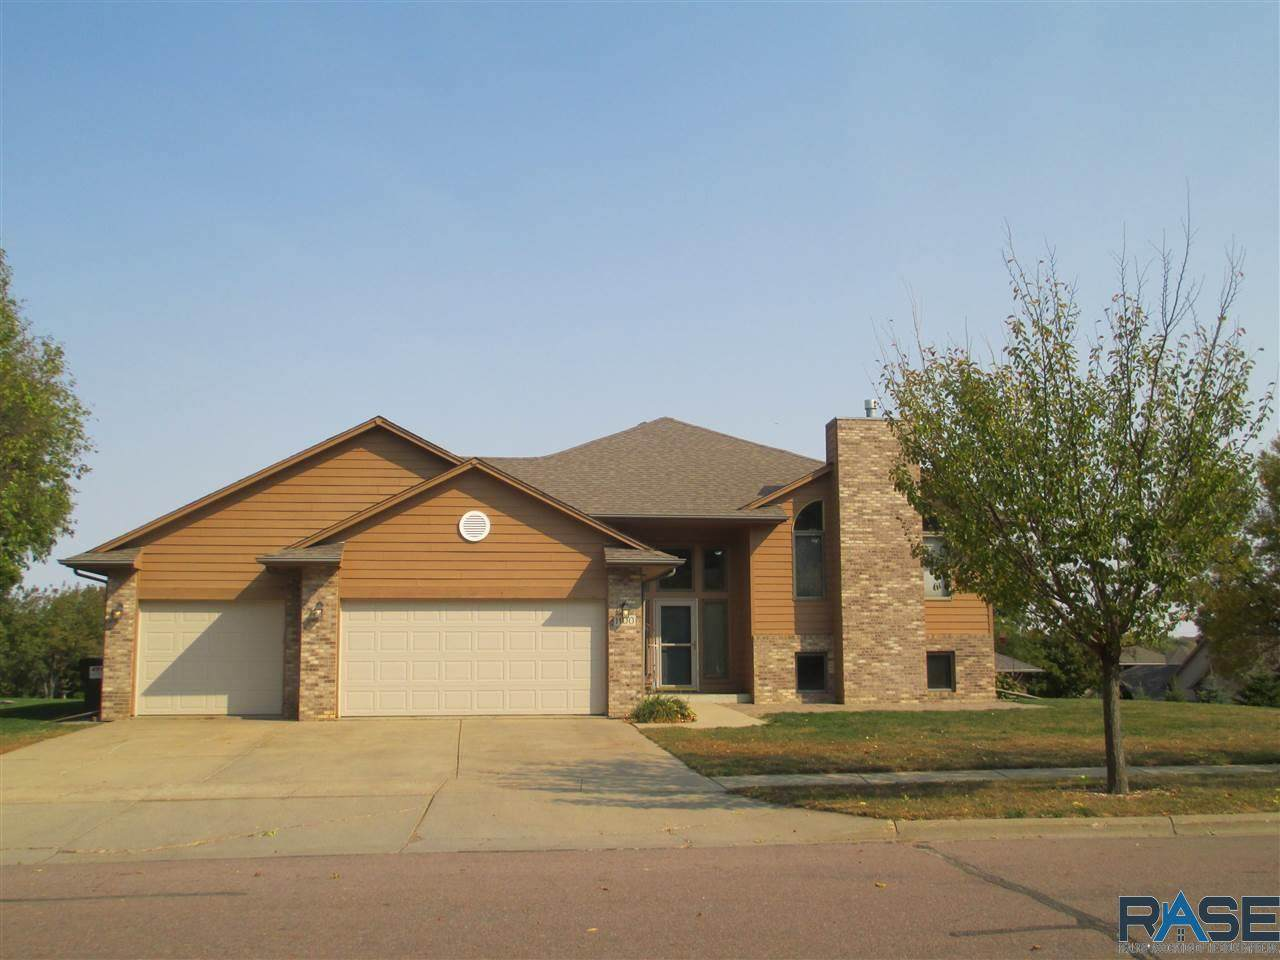 1100 Vail Dr - Photo 1